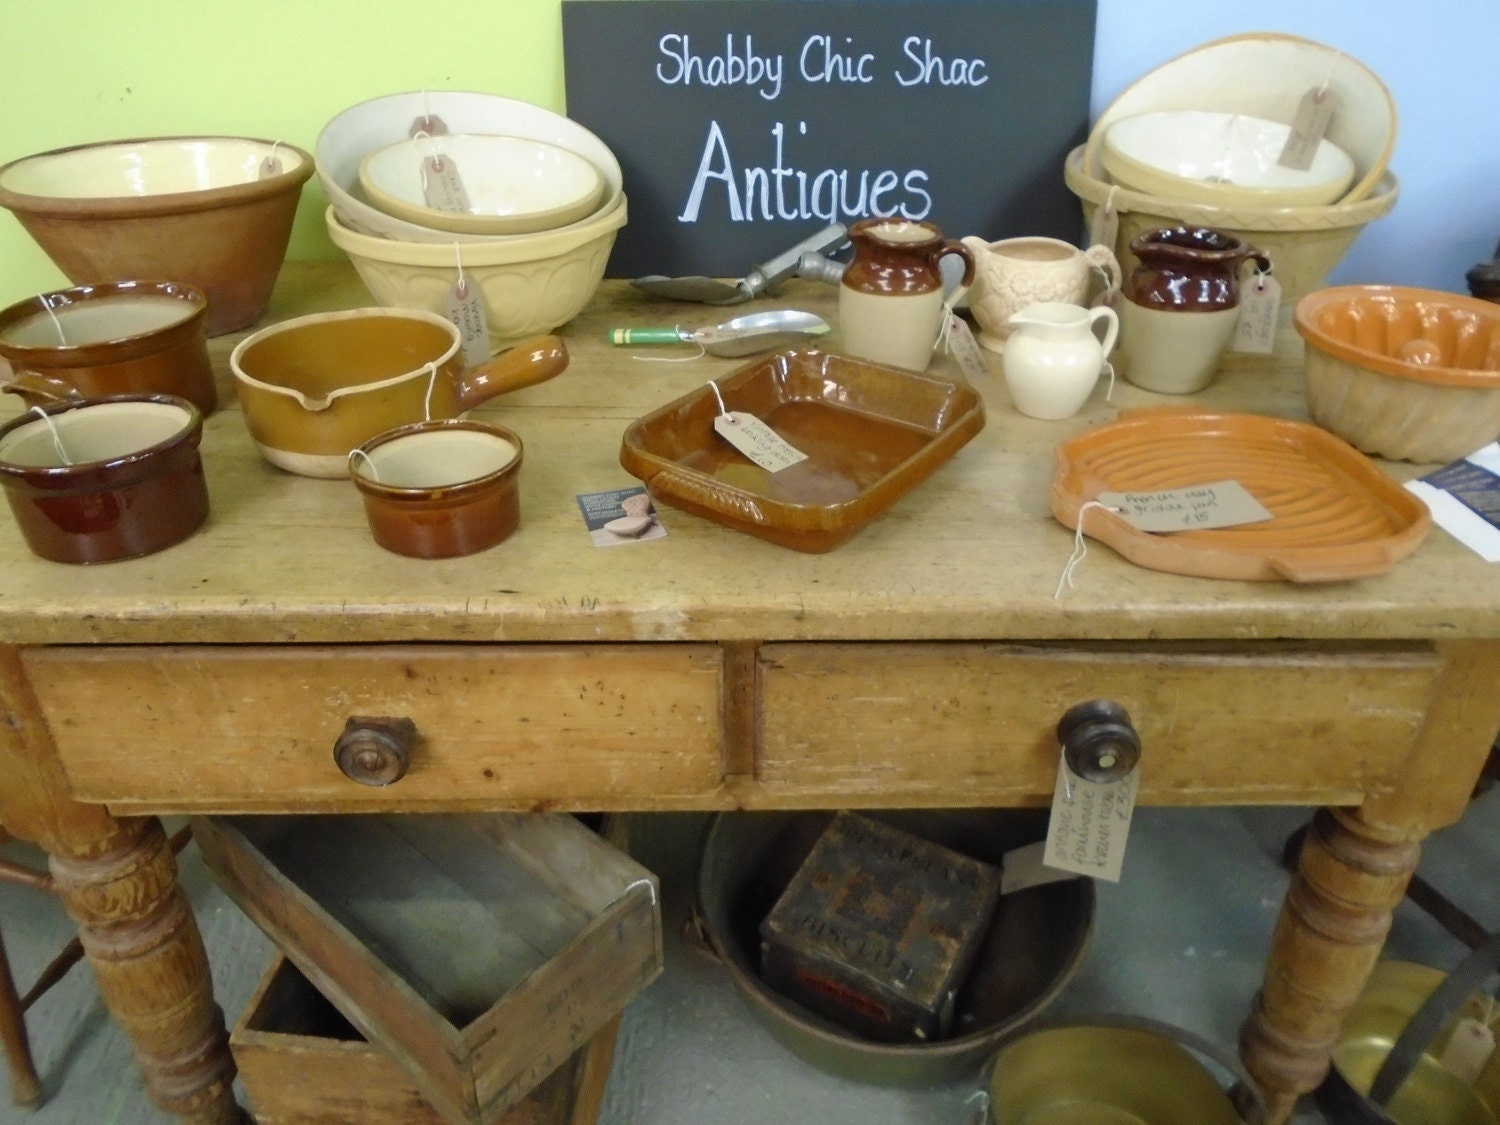 Farmhouse kitchen table laden with French vintage stoneware